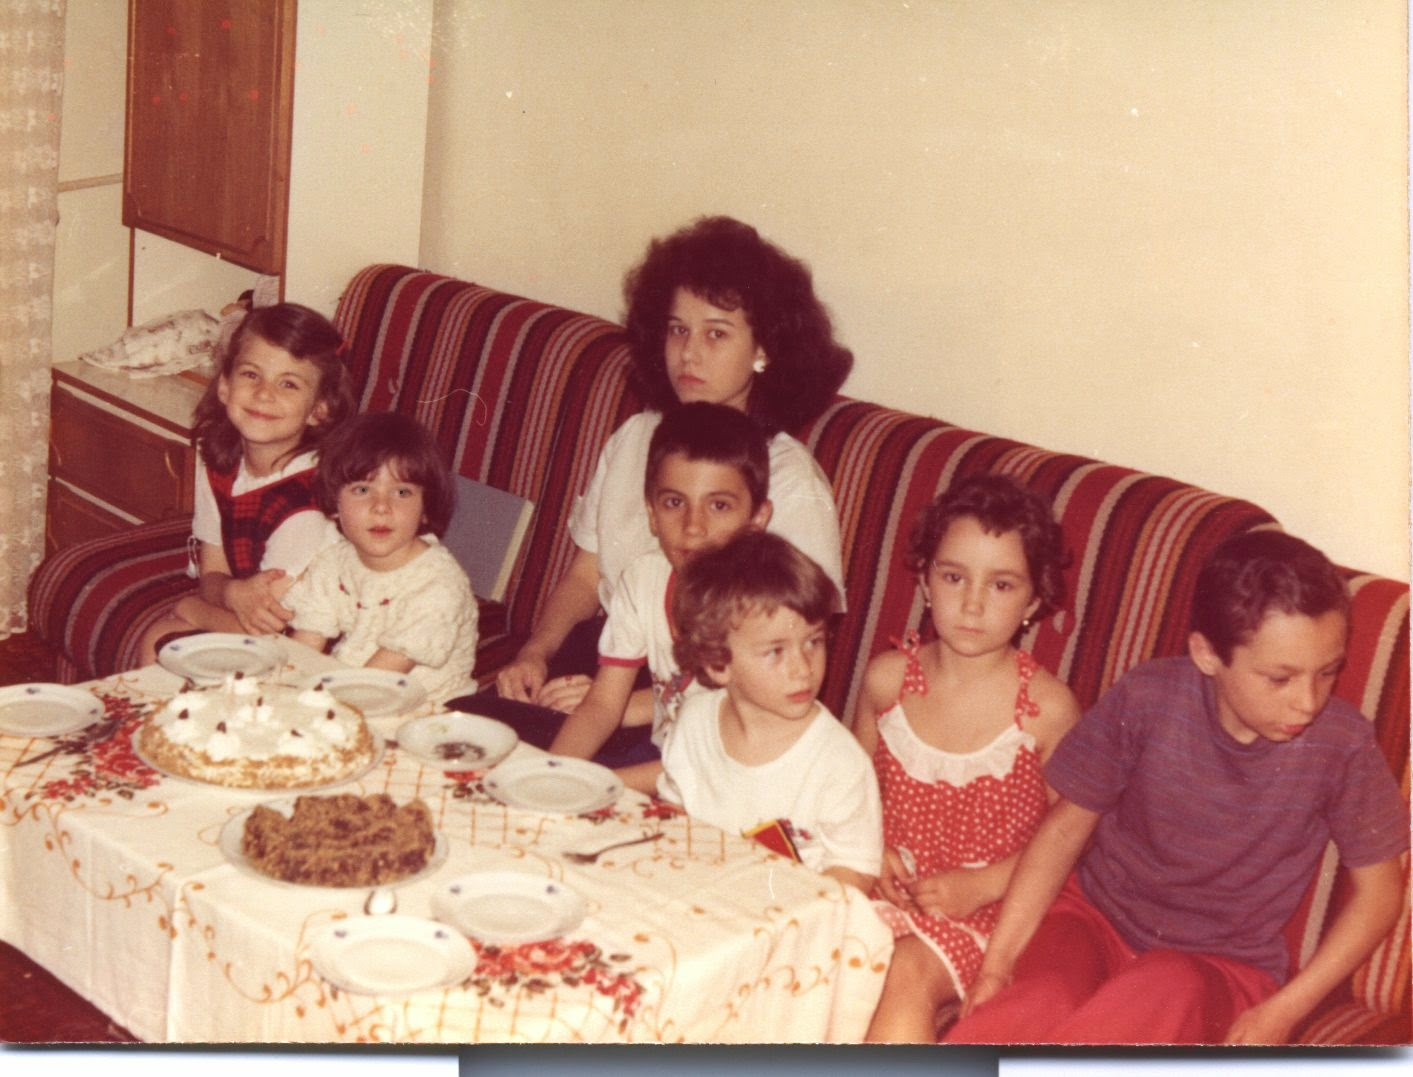 Olivia Maria, Silviu Marcov, Silviu Jr., Irina Craciunas' Birthday, May 17, 1985, Bucharest Romania